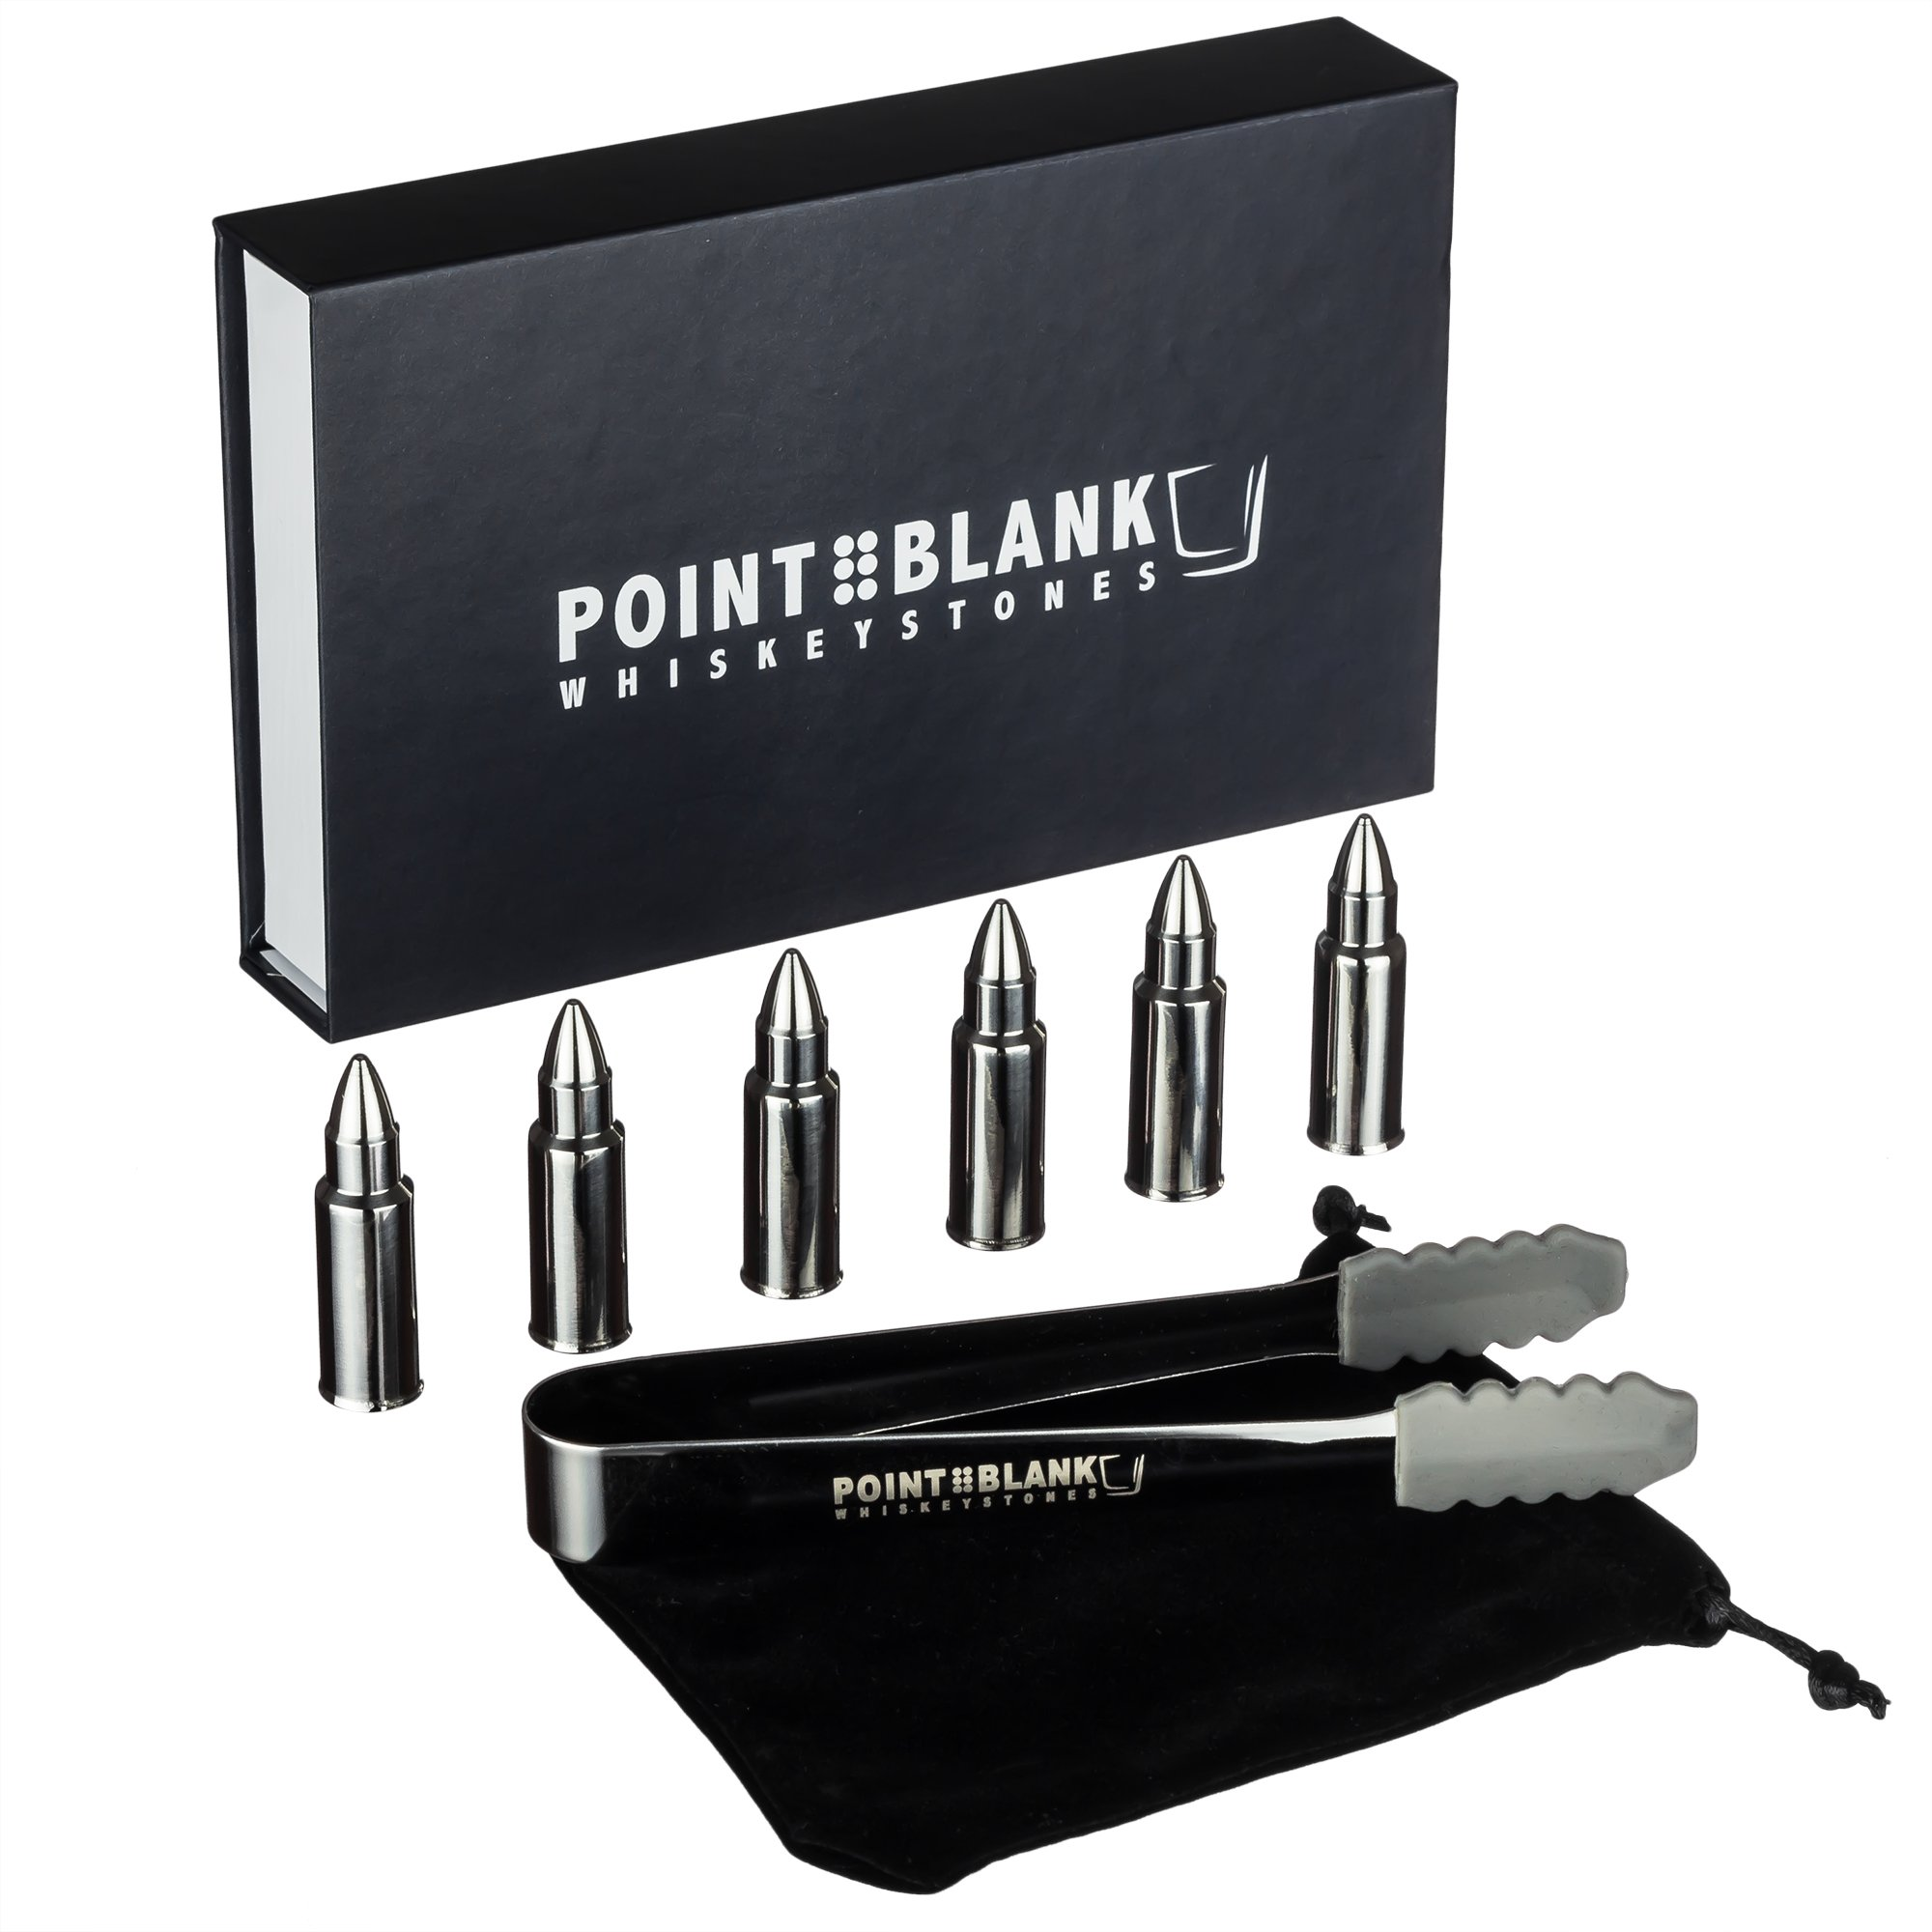 Pointblank Stainless Steel Bullet Shaped Whiskey Stones, Reusable, Stainless Steel Drink Chillers with Tongs and Storage Bag (Set of 6)